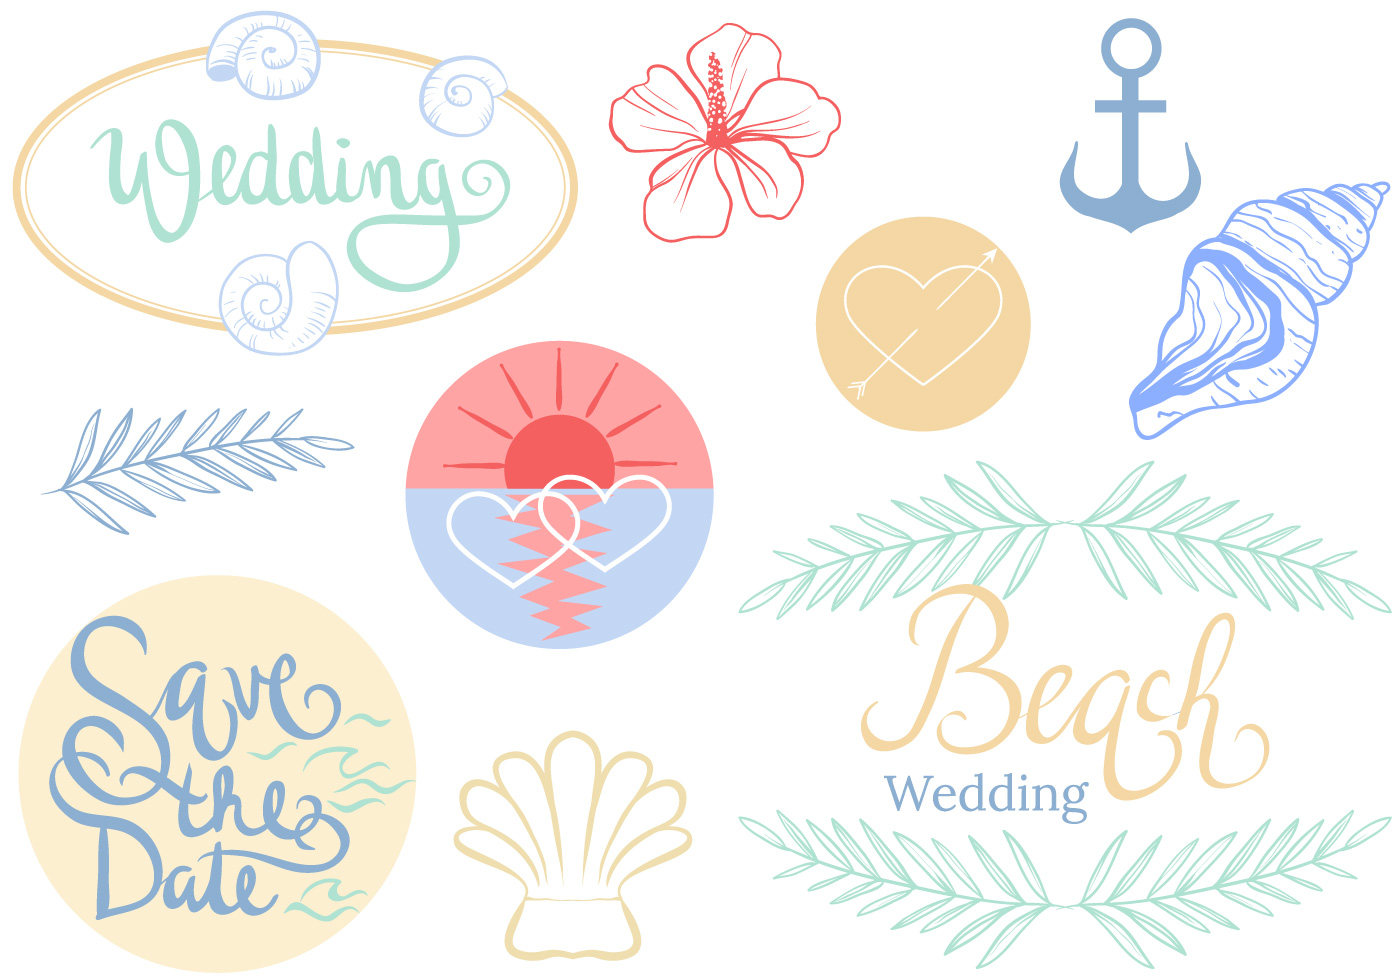 Cute Marriage Couple Wallpaper Free Beach Wedding Vectors Download Free Vector Art